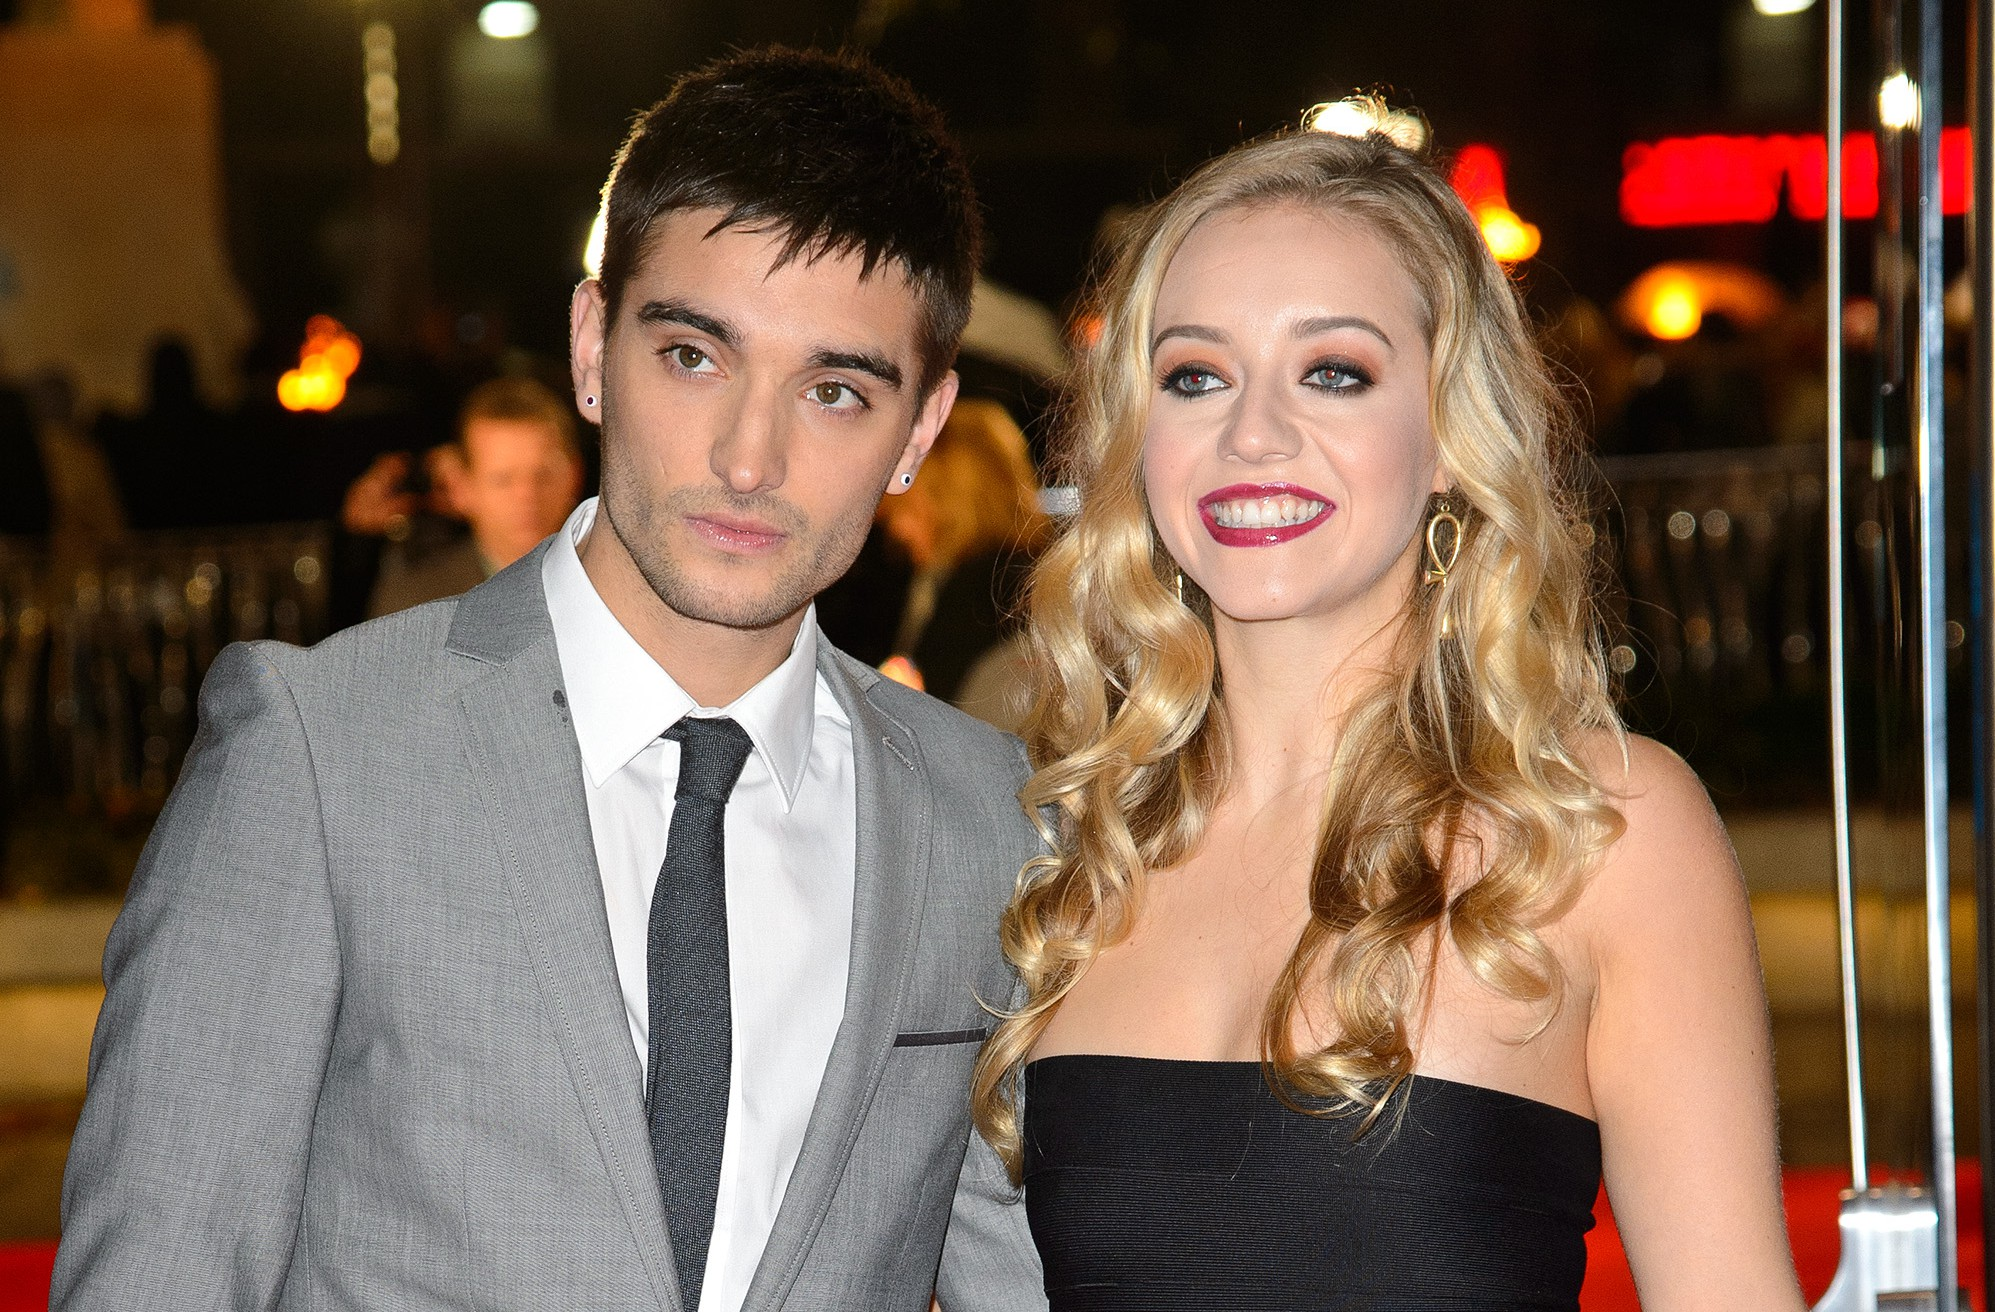 Tom Parker engaged to Kelsey Hardwick – and he's planning on reforming The Wanted at his wedding